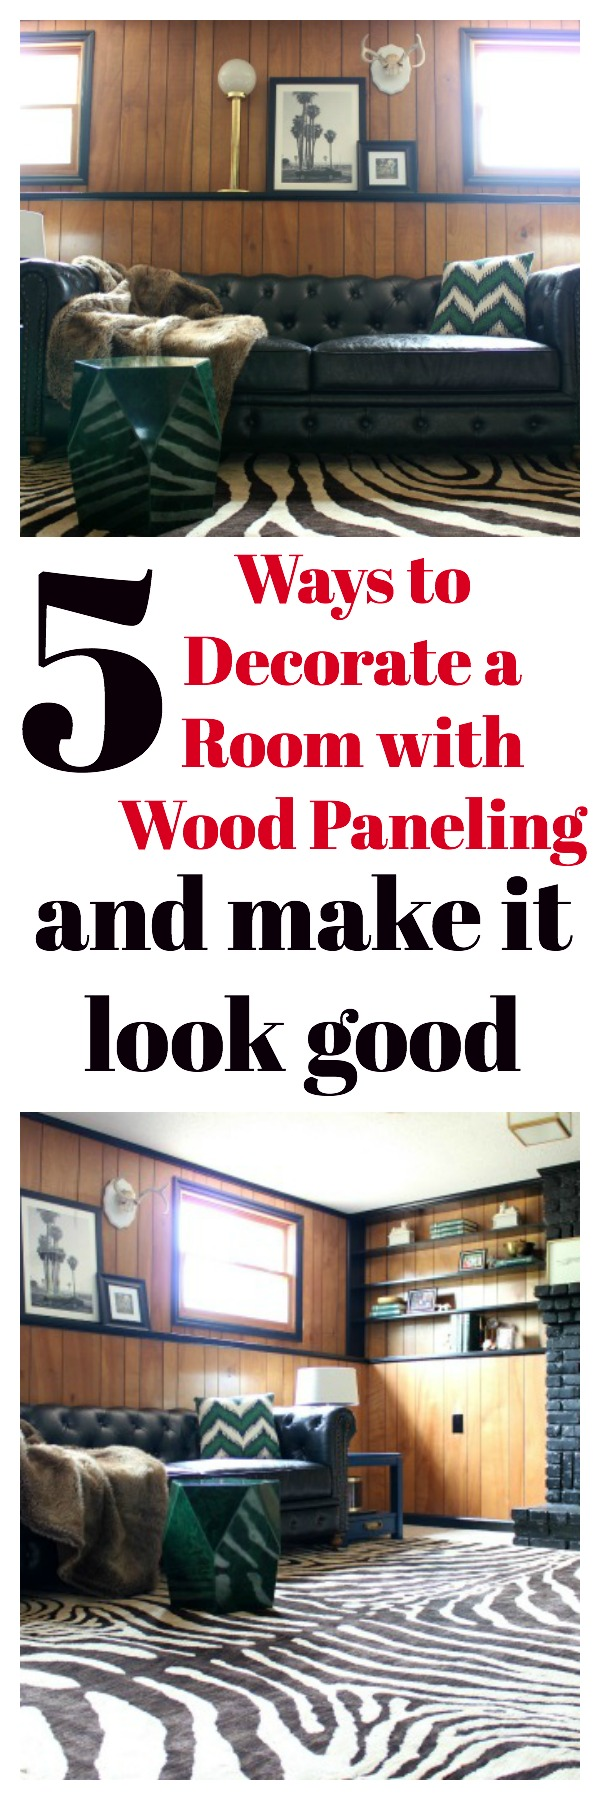 Five Ways to Decorate a Room with Wood Paneling and Make It Look Good | These are really great ideas to save some money and to help you learn to love your wood paneling! | Den | Jungle Room | 70's Inspired Interior Design